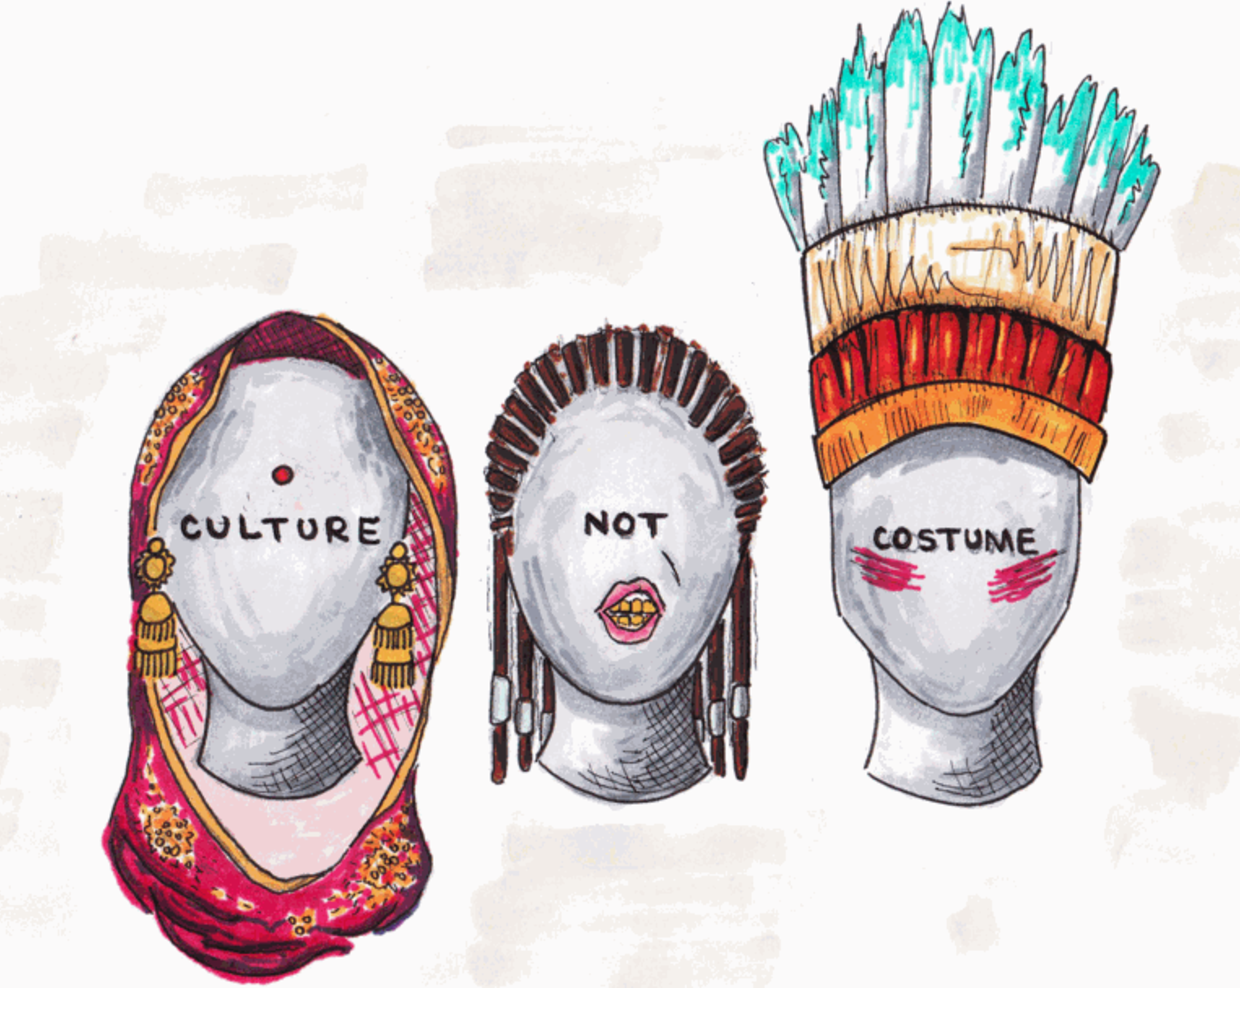 VIDEO REVIEW: MTV DECODED'S 7 MYTHS ABOUT CULTURAL APPROPRIATION DEBUNKED via Swirl Nation Blog